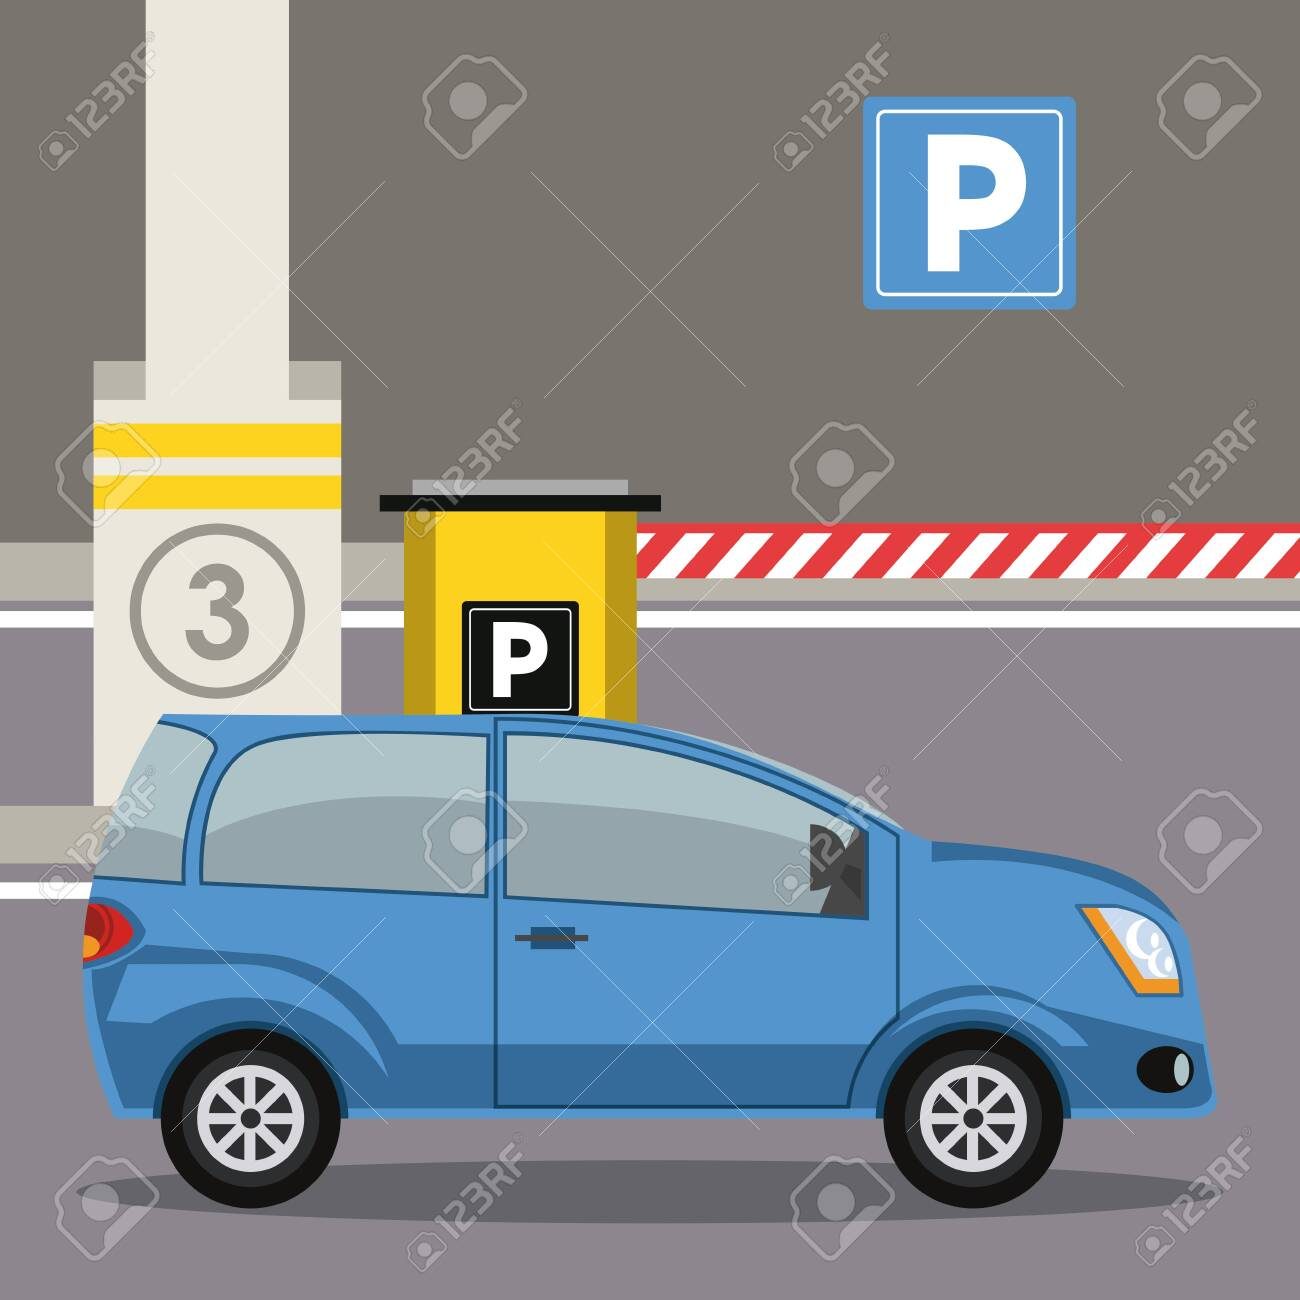 Car parked in lot with parking meter at city vector illustration graphic design - 125429331